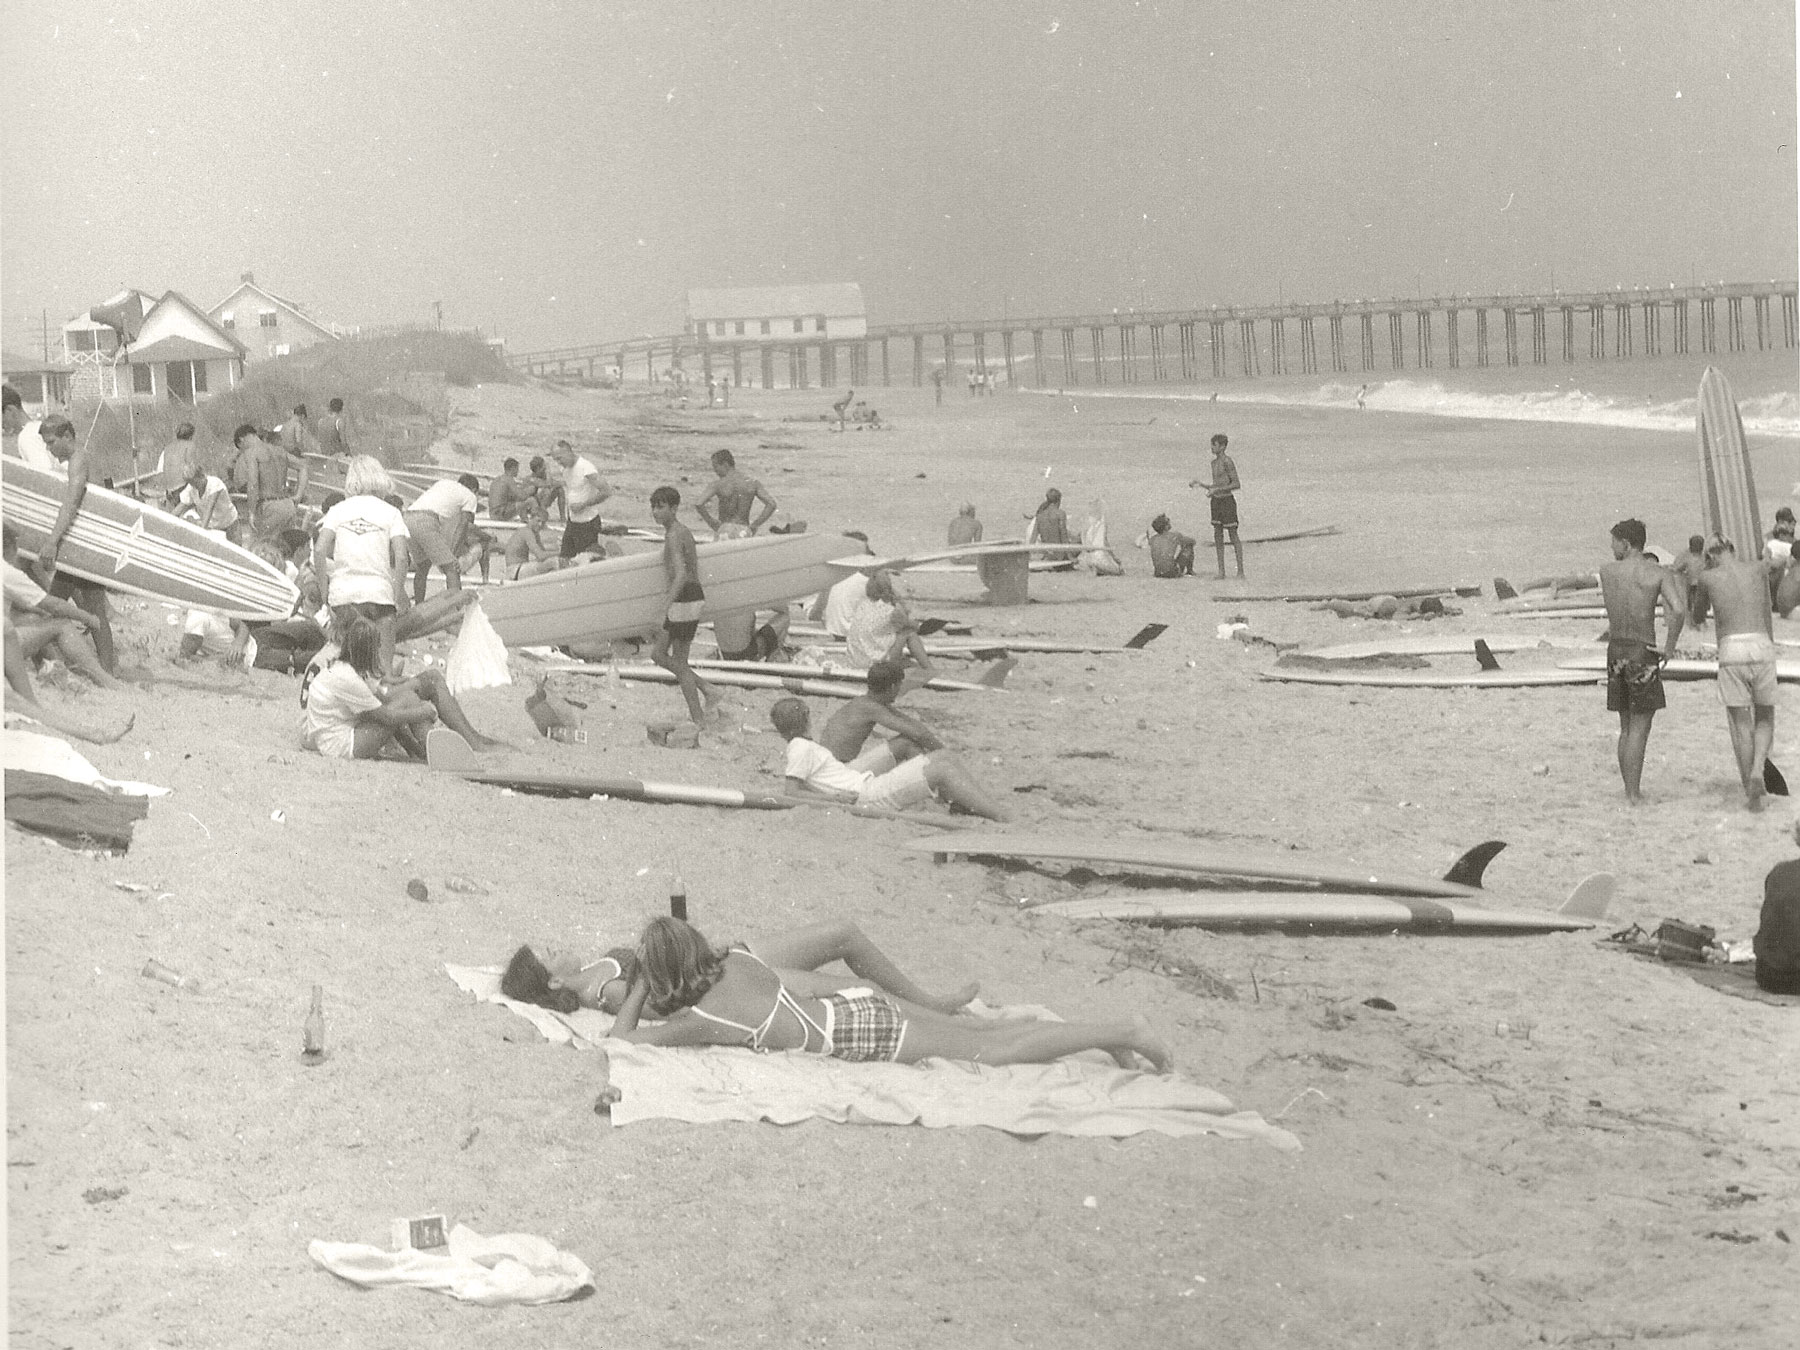 Surfing Contest in Kitty Hawk (1963) | Photo by Aycock Brown, Outer Banks History Center